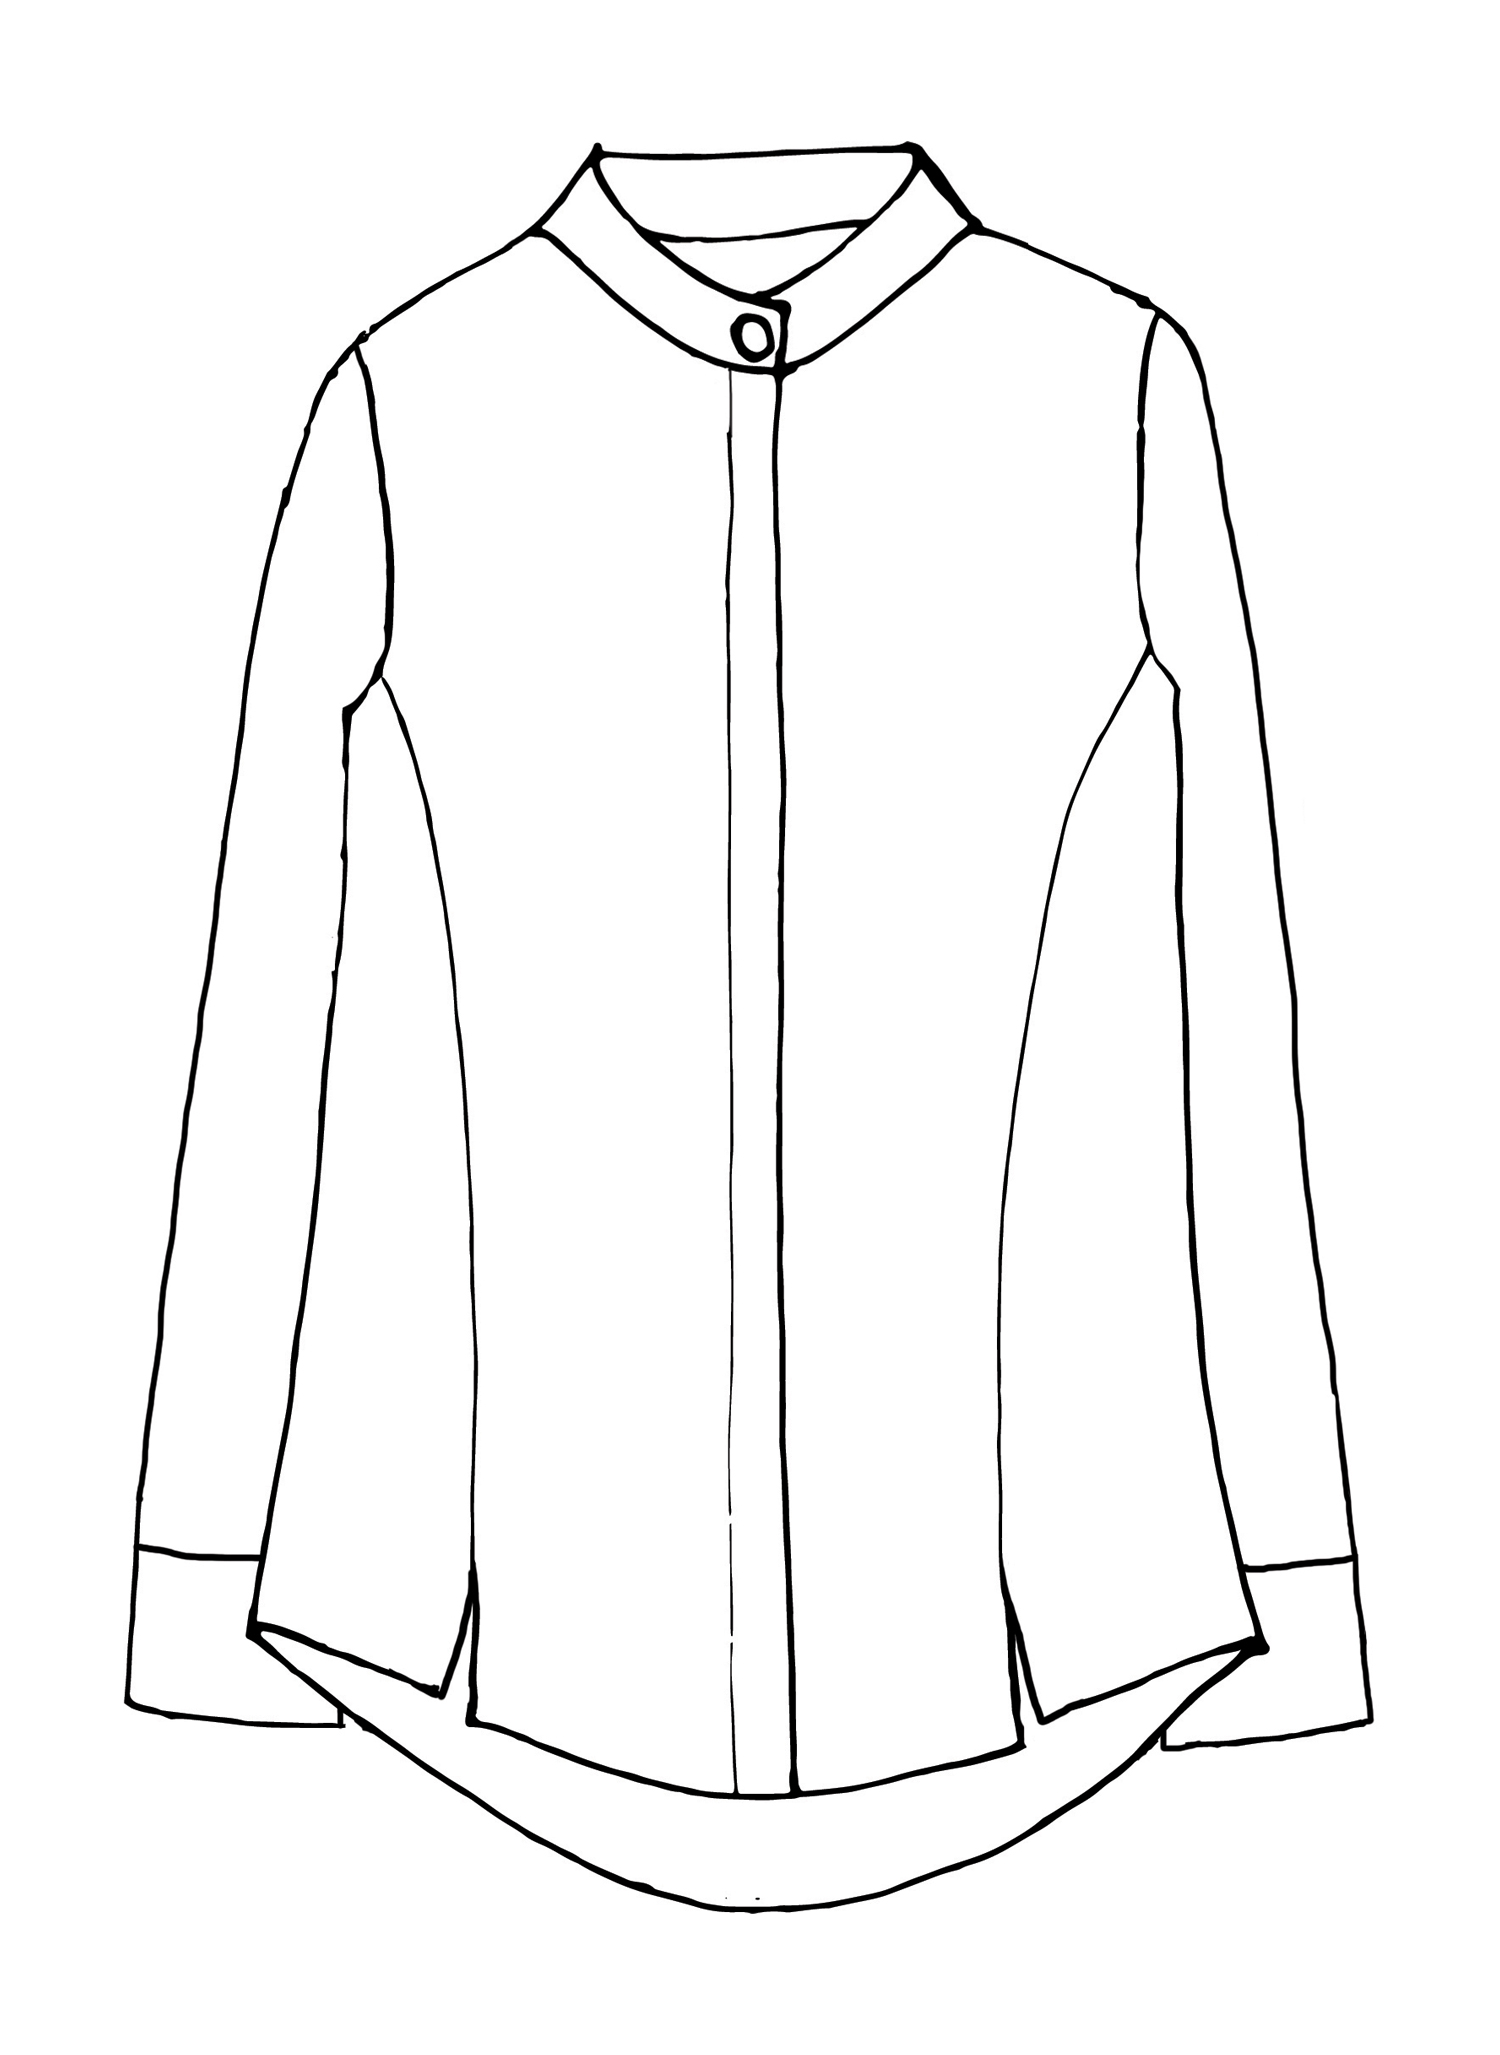 Wear-With-All Shirt sketch image